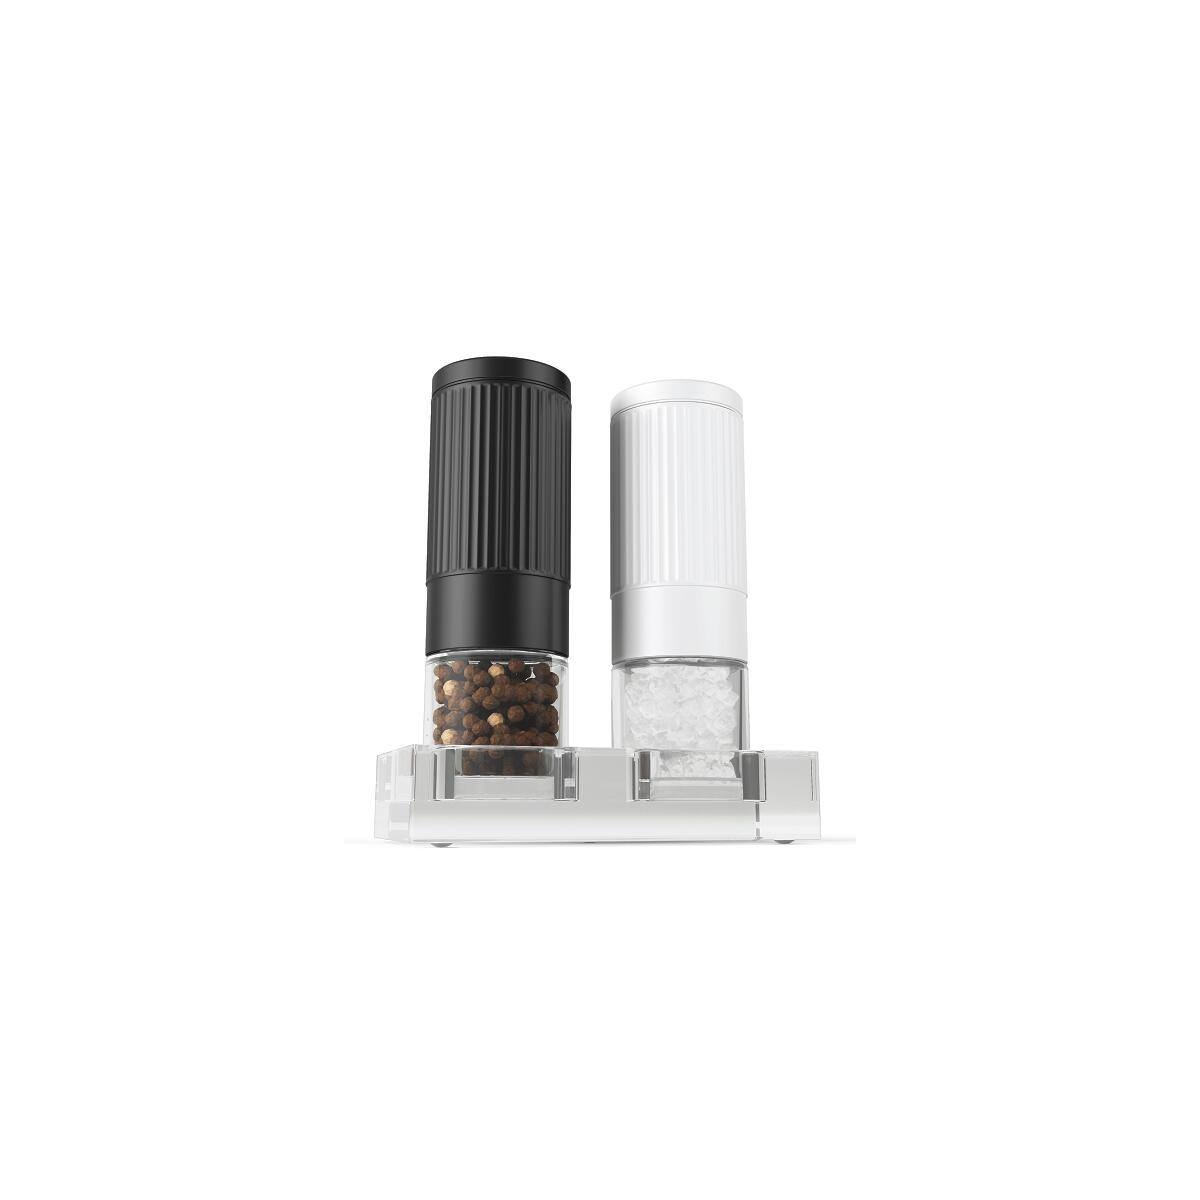 Eparé Mini Salt & Pepper Grinder Set